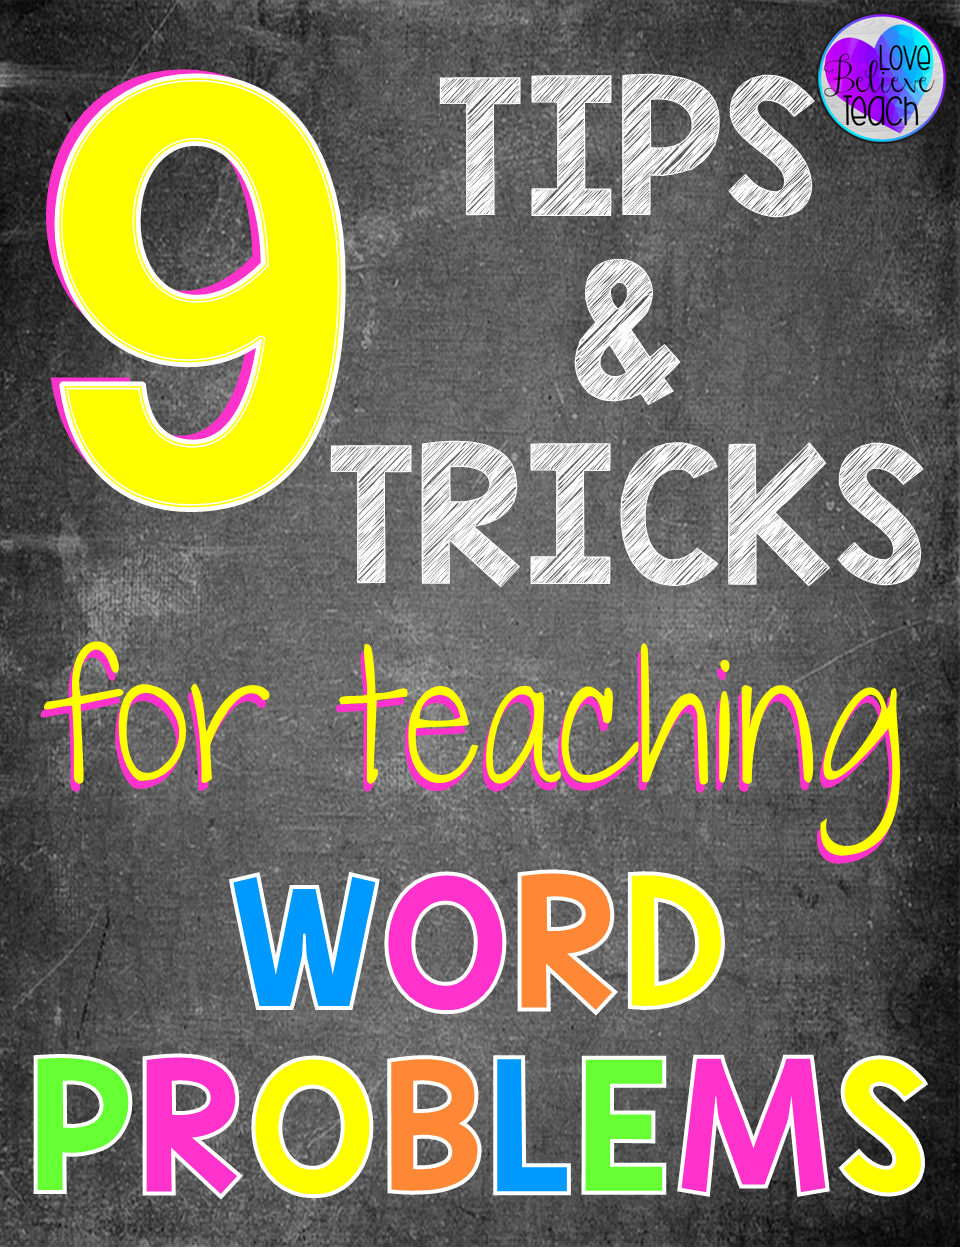 9 tips and tricks for teaching word problems to be teaching and math word problems elementary students solving math word problems online tools best kids pro ed inc manhattan school apologizes after assigning